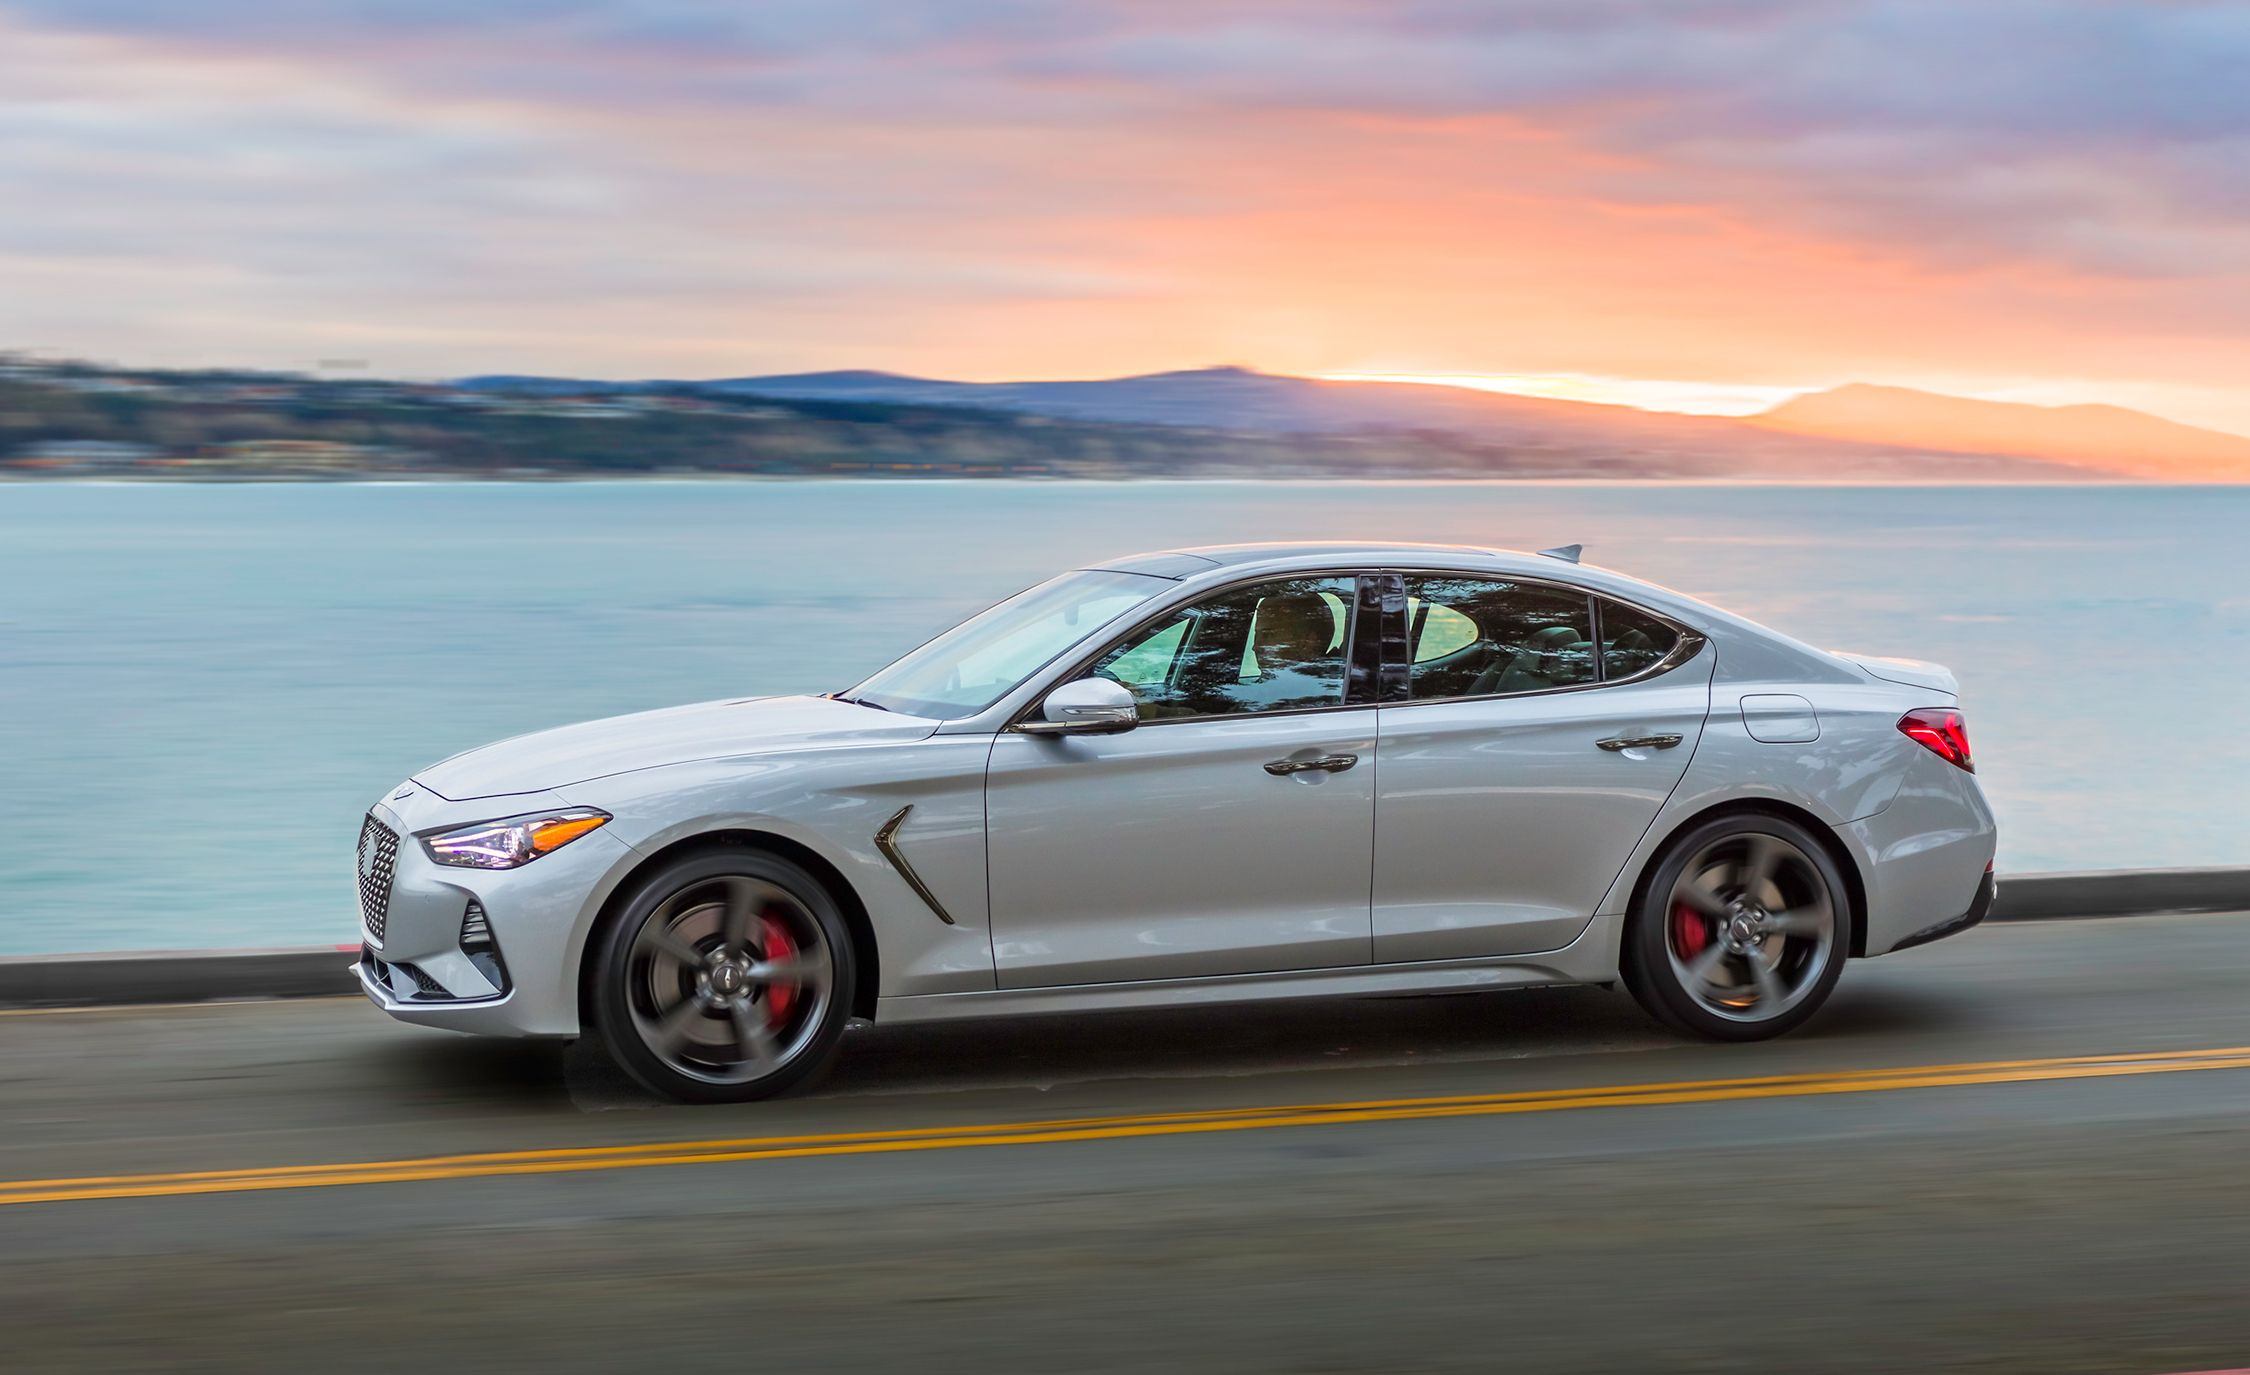 Mercedes Benz Silver Lightning Price >> This Is the 2019 Genesis G70 Car and Driver Would Build